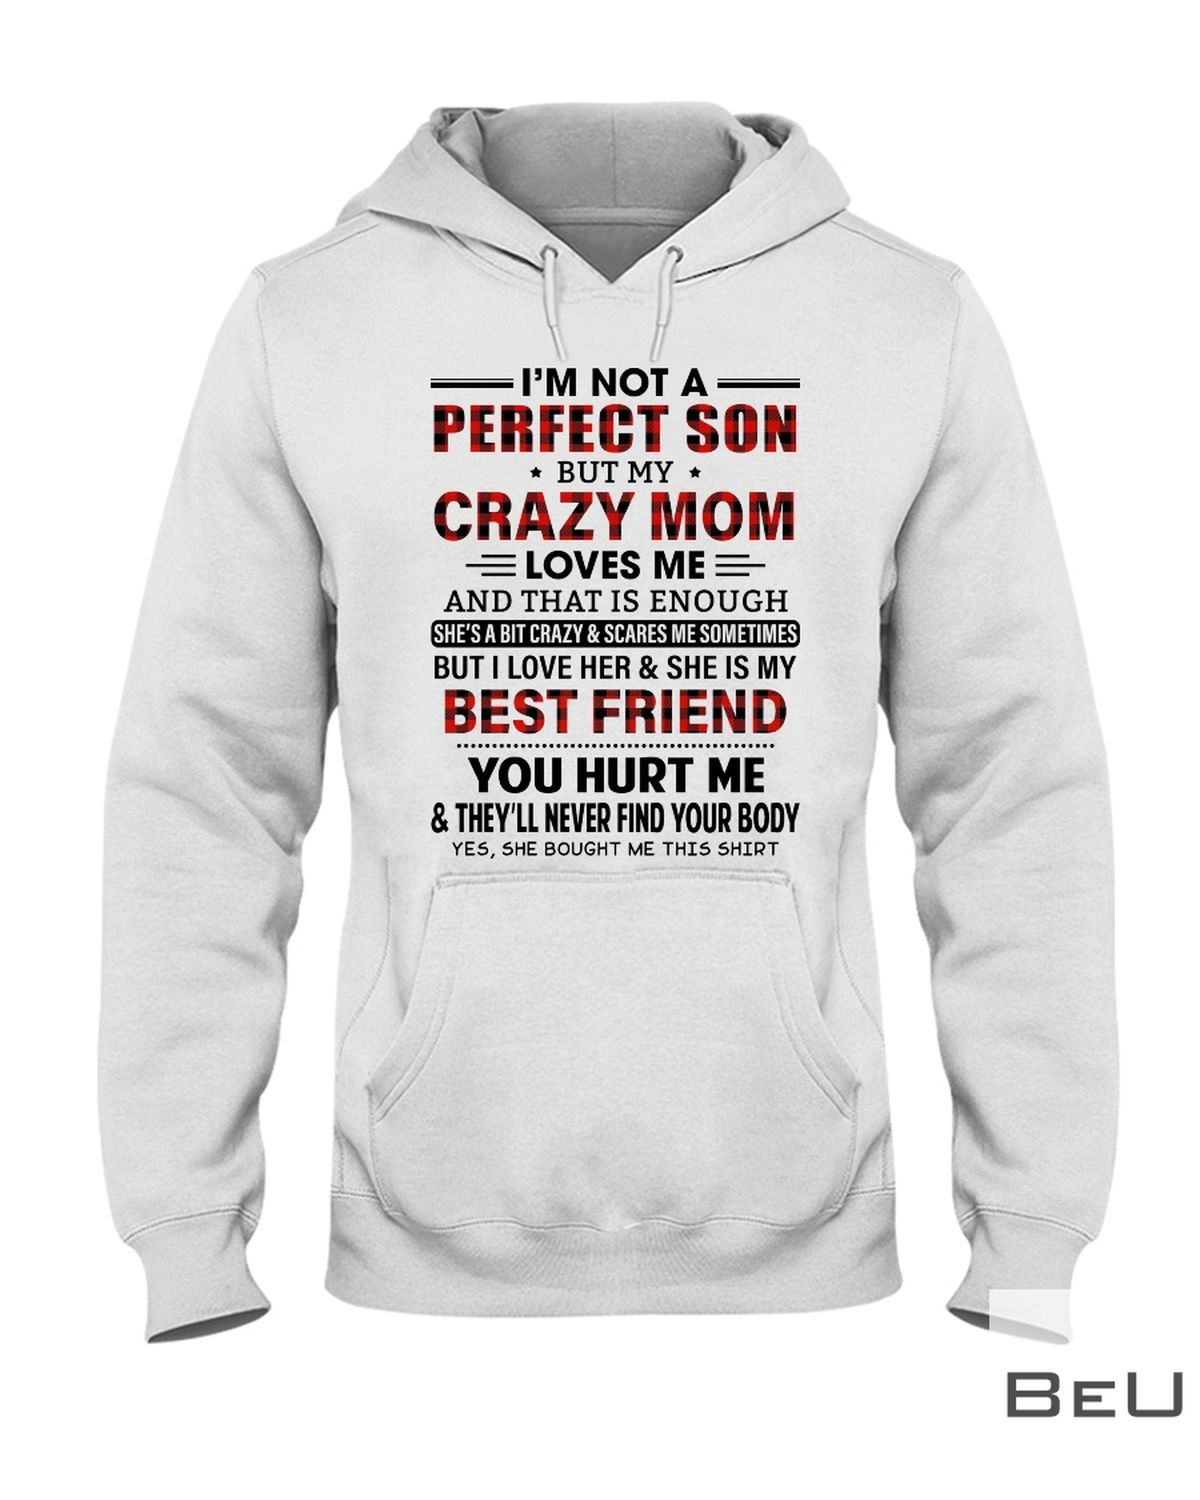 I'm Not A Perfect Son But My Crazy Mom Loves Me Shirtx